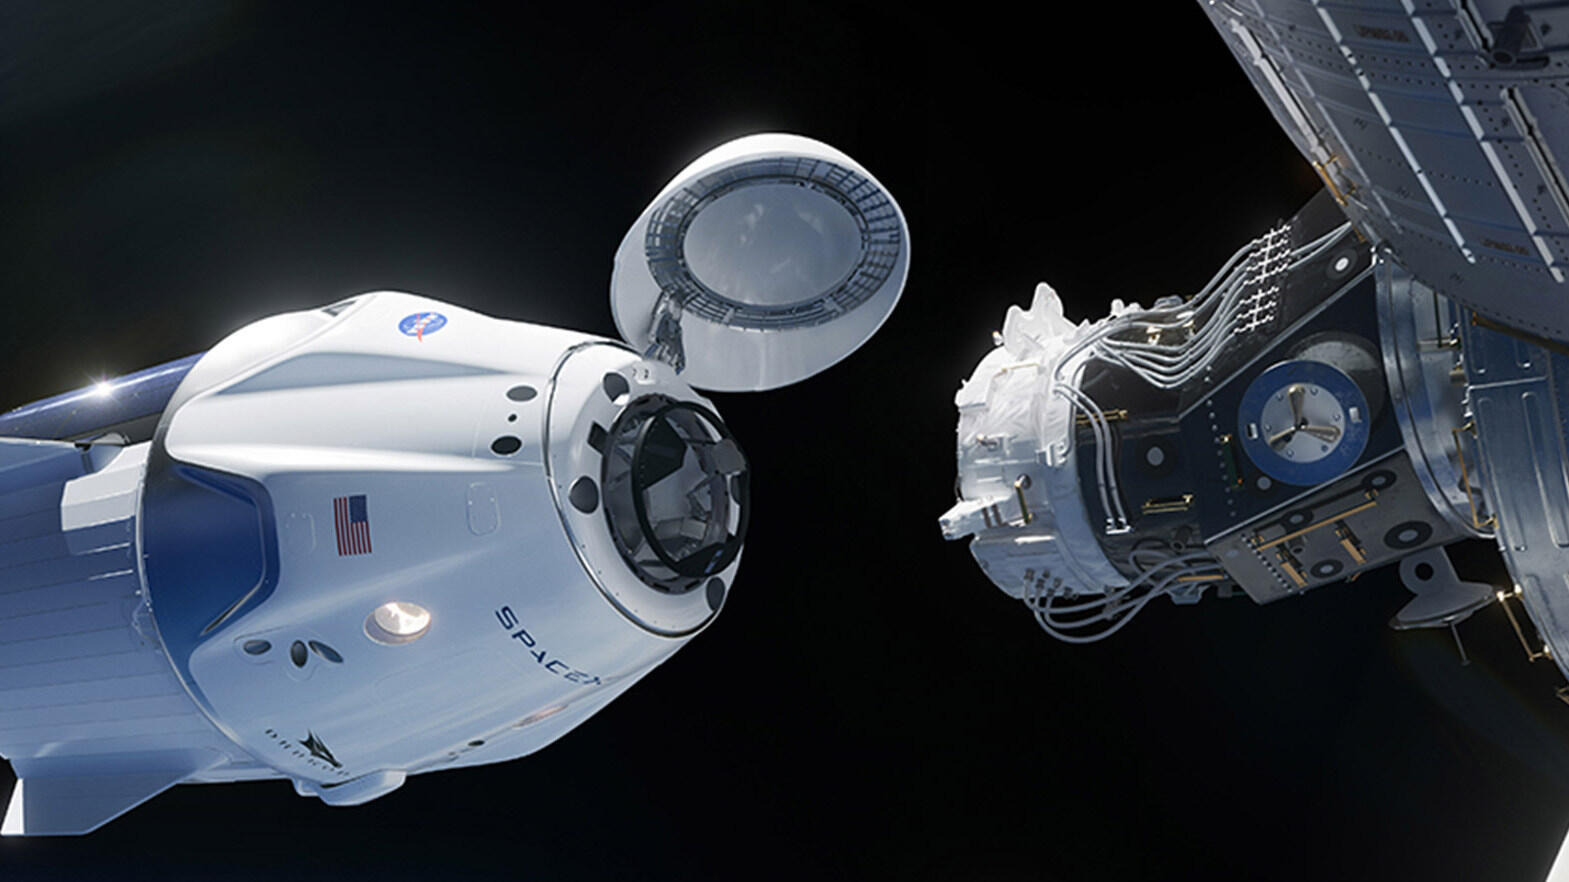 How to watch SpaceX launch NASA astronauts to orbit on the Crew-3 mission - CNET